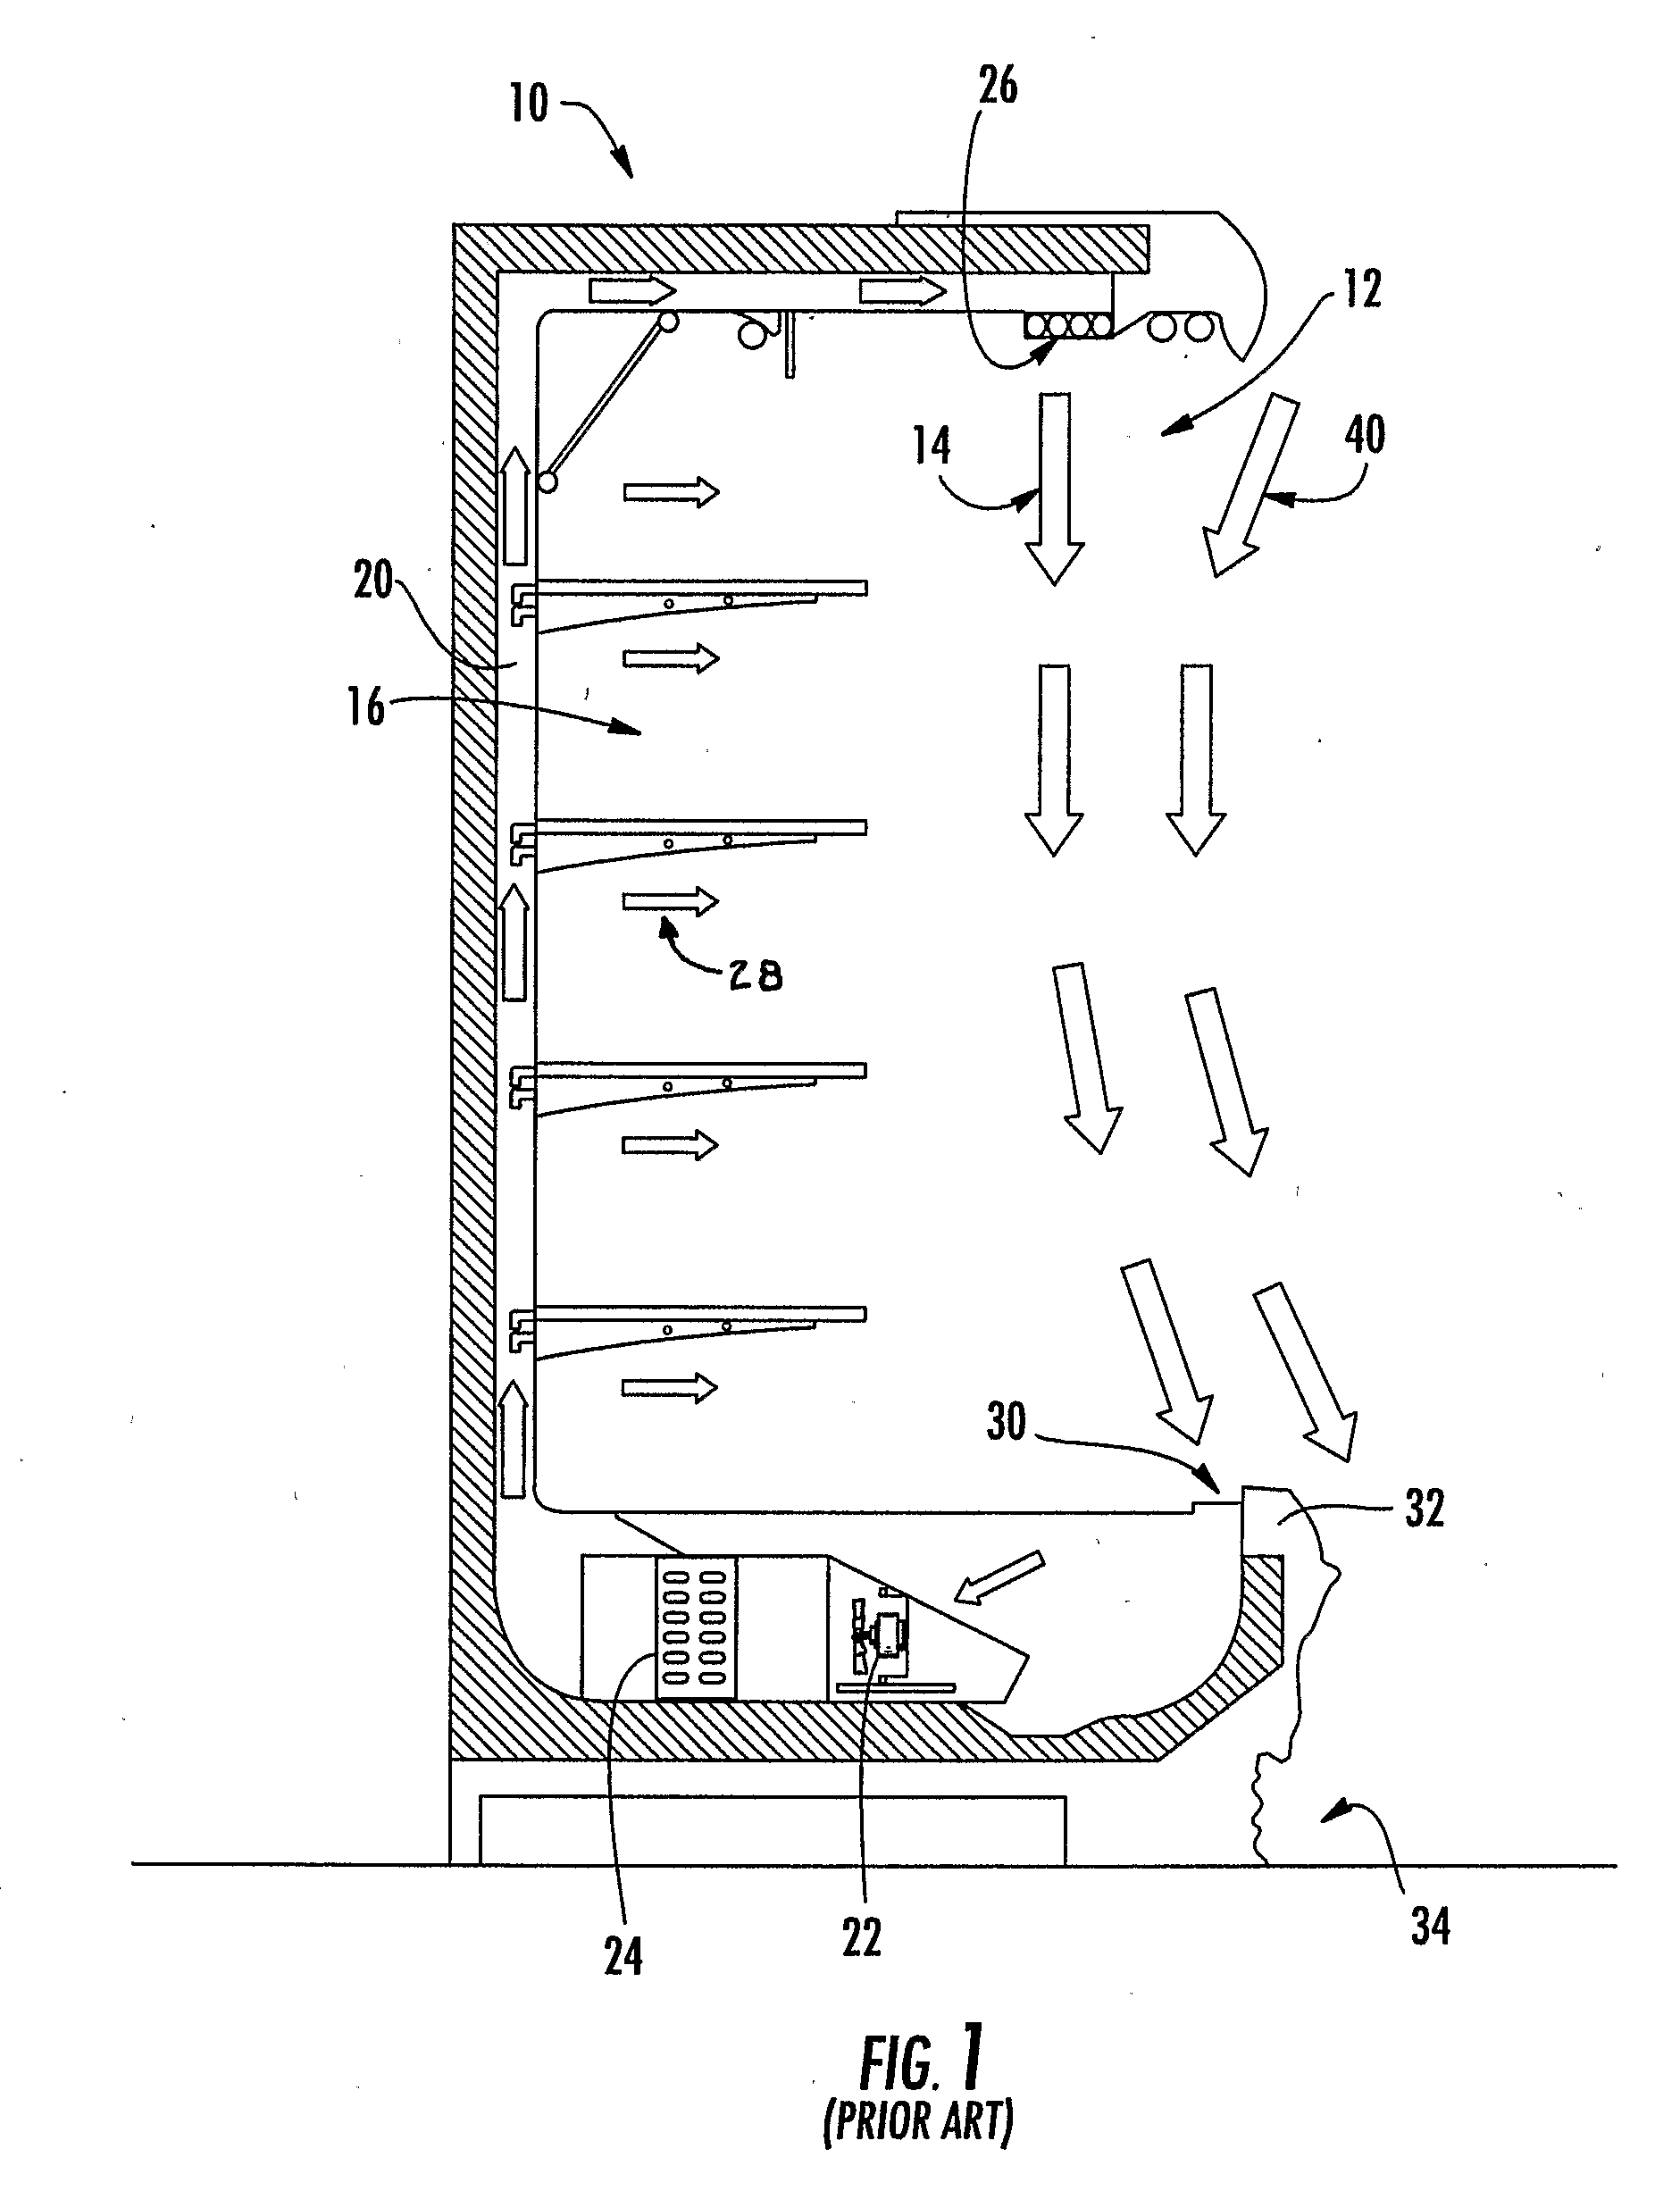 Patent US Air curtain system for a refrigerated case